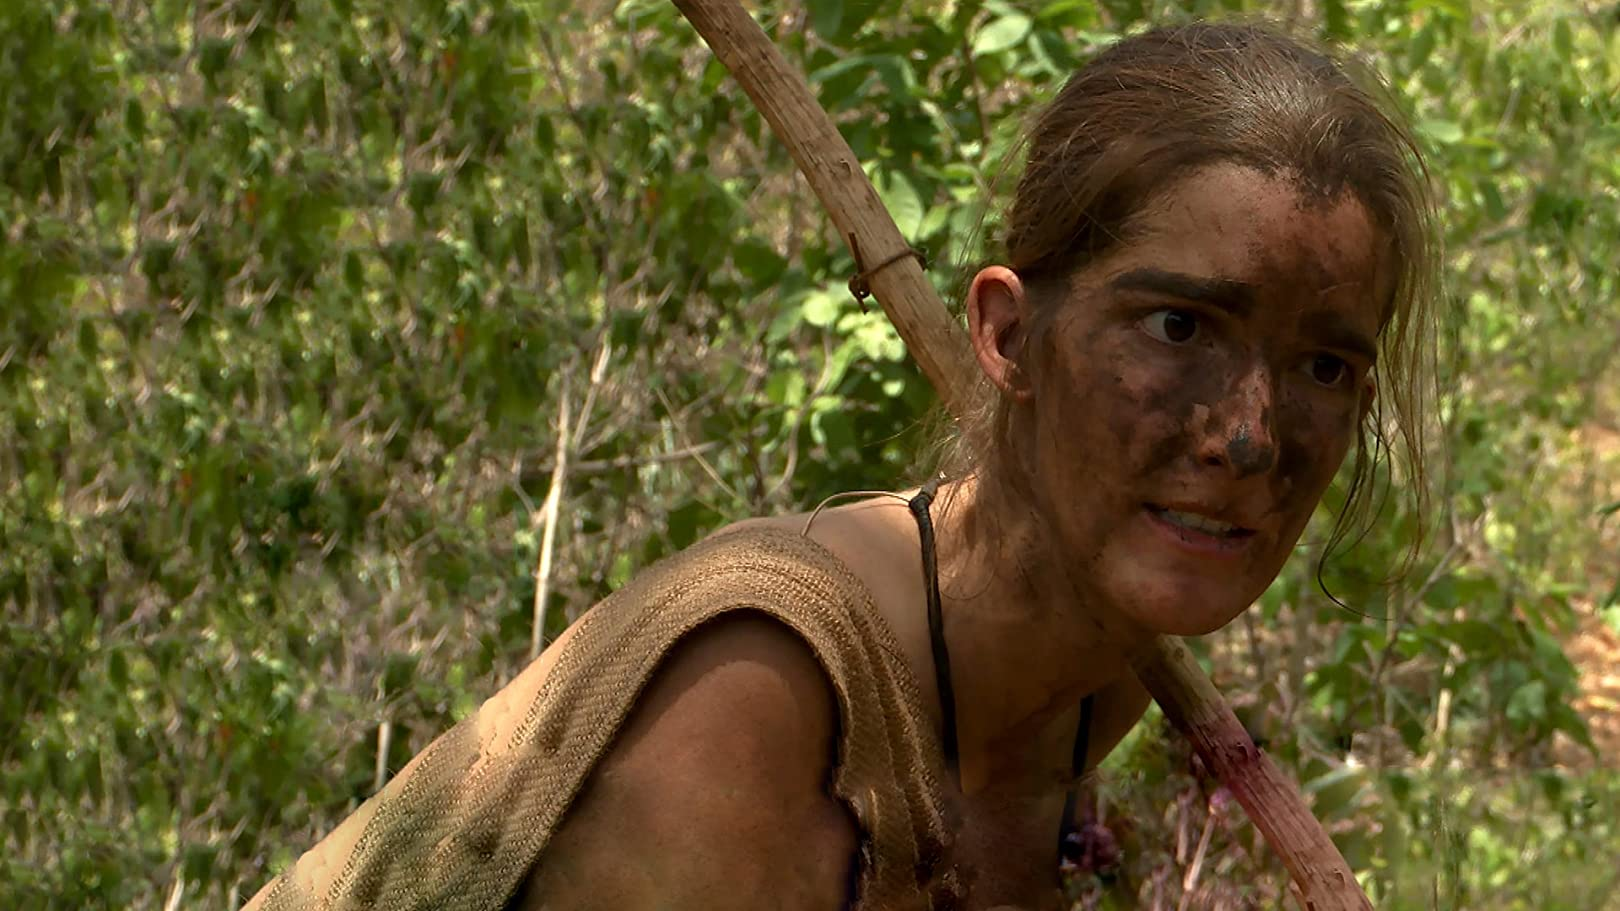 Naked and Afraid XL - Season 6 Watch Online on CouchTuner